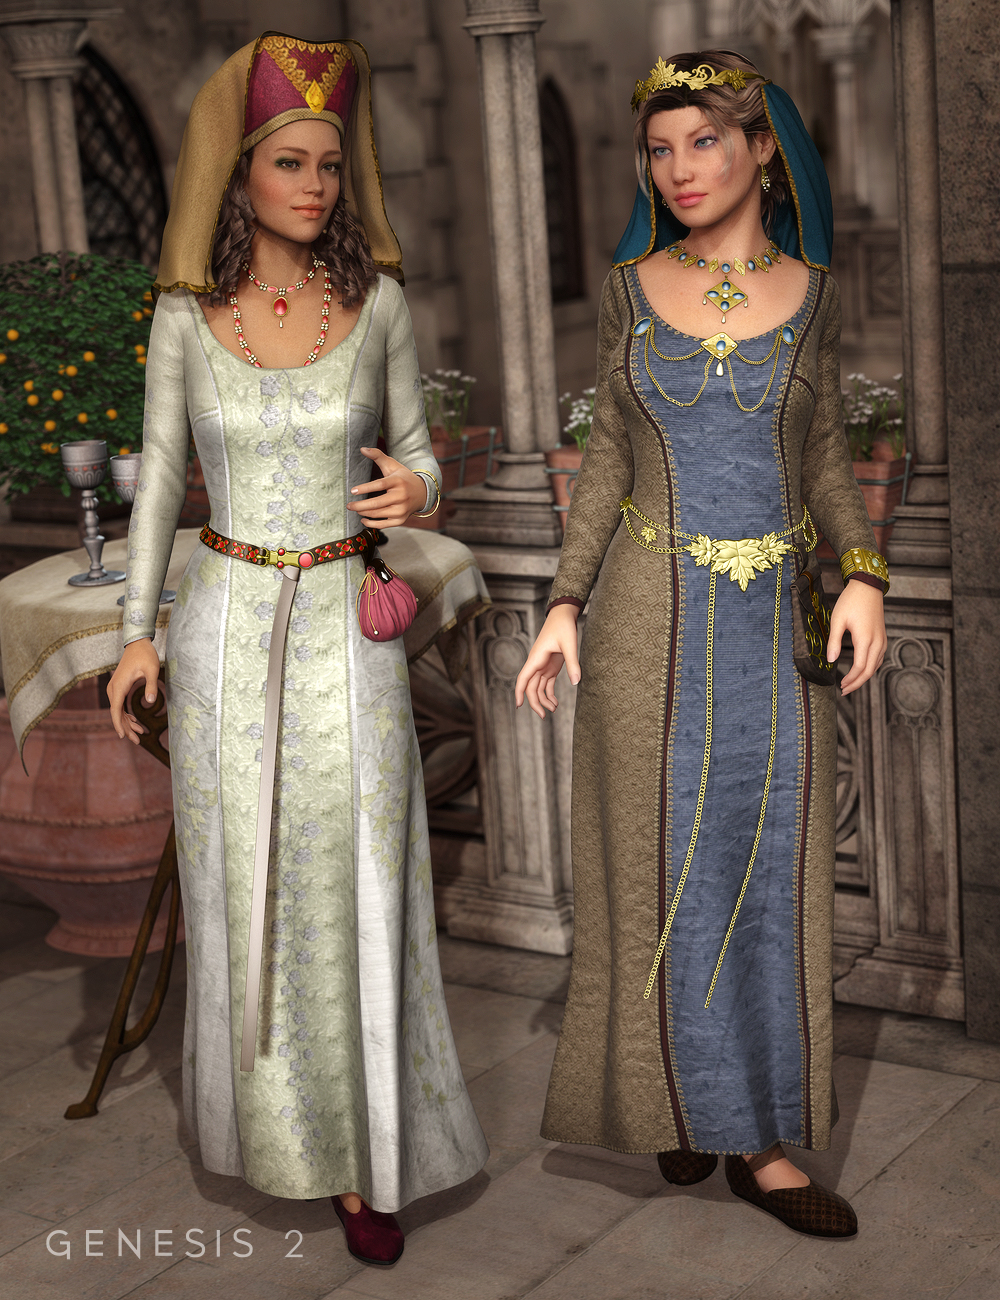 Medieval Fantasy Accessories for Genesis 2 Female(s) by: Ravenhair, 3D Models by Daz 3D